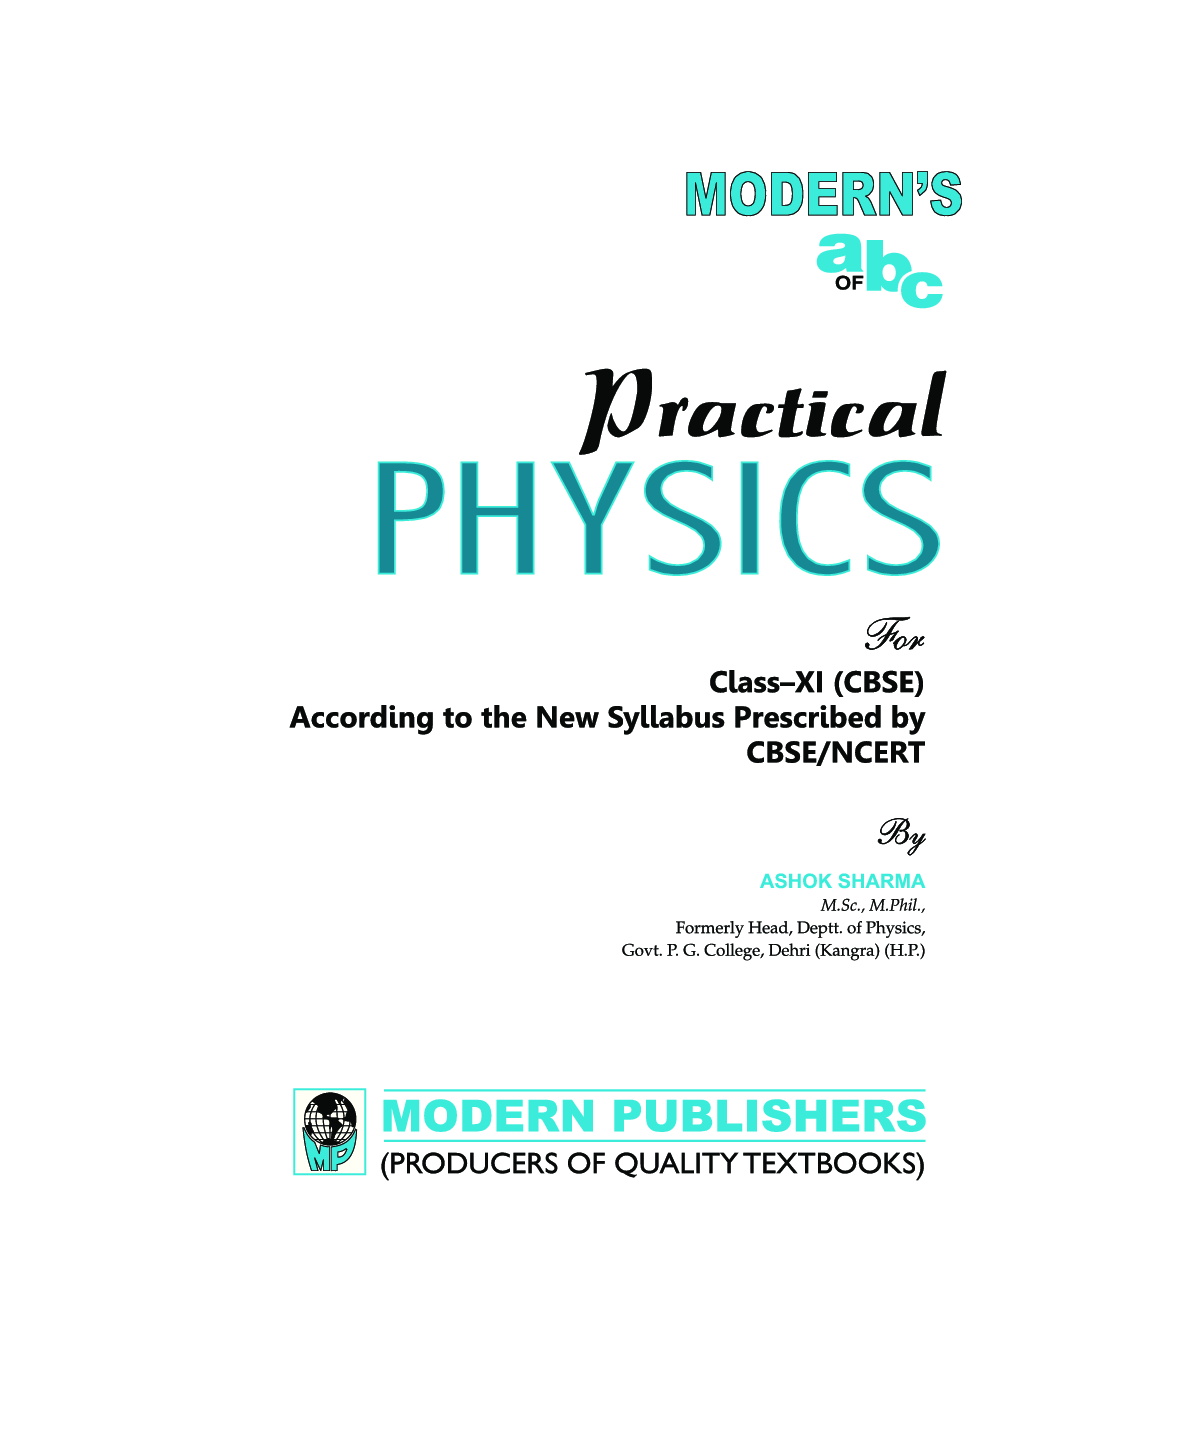 Download Modern's abc Plus Of Physics For class XI Part-1